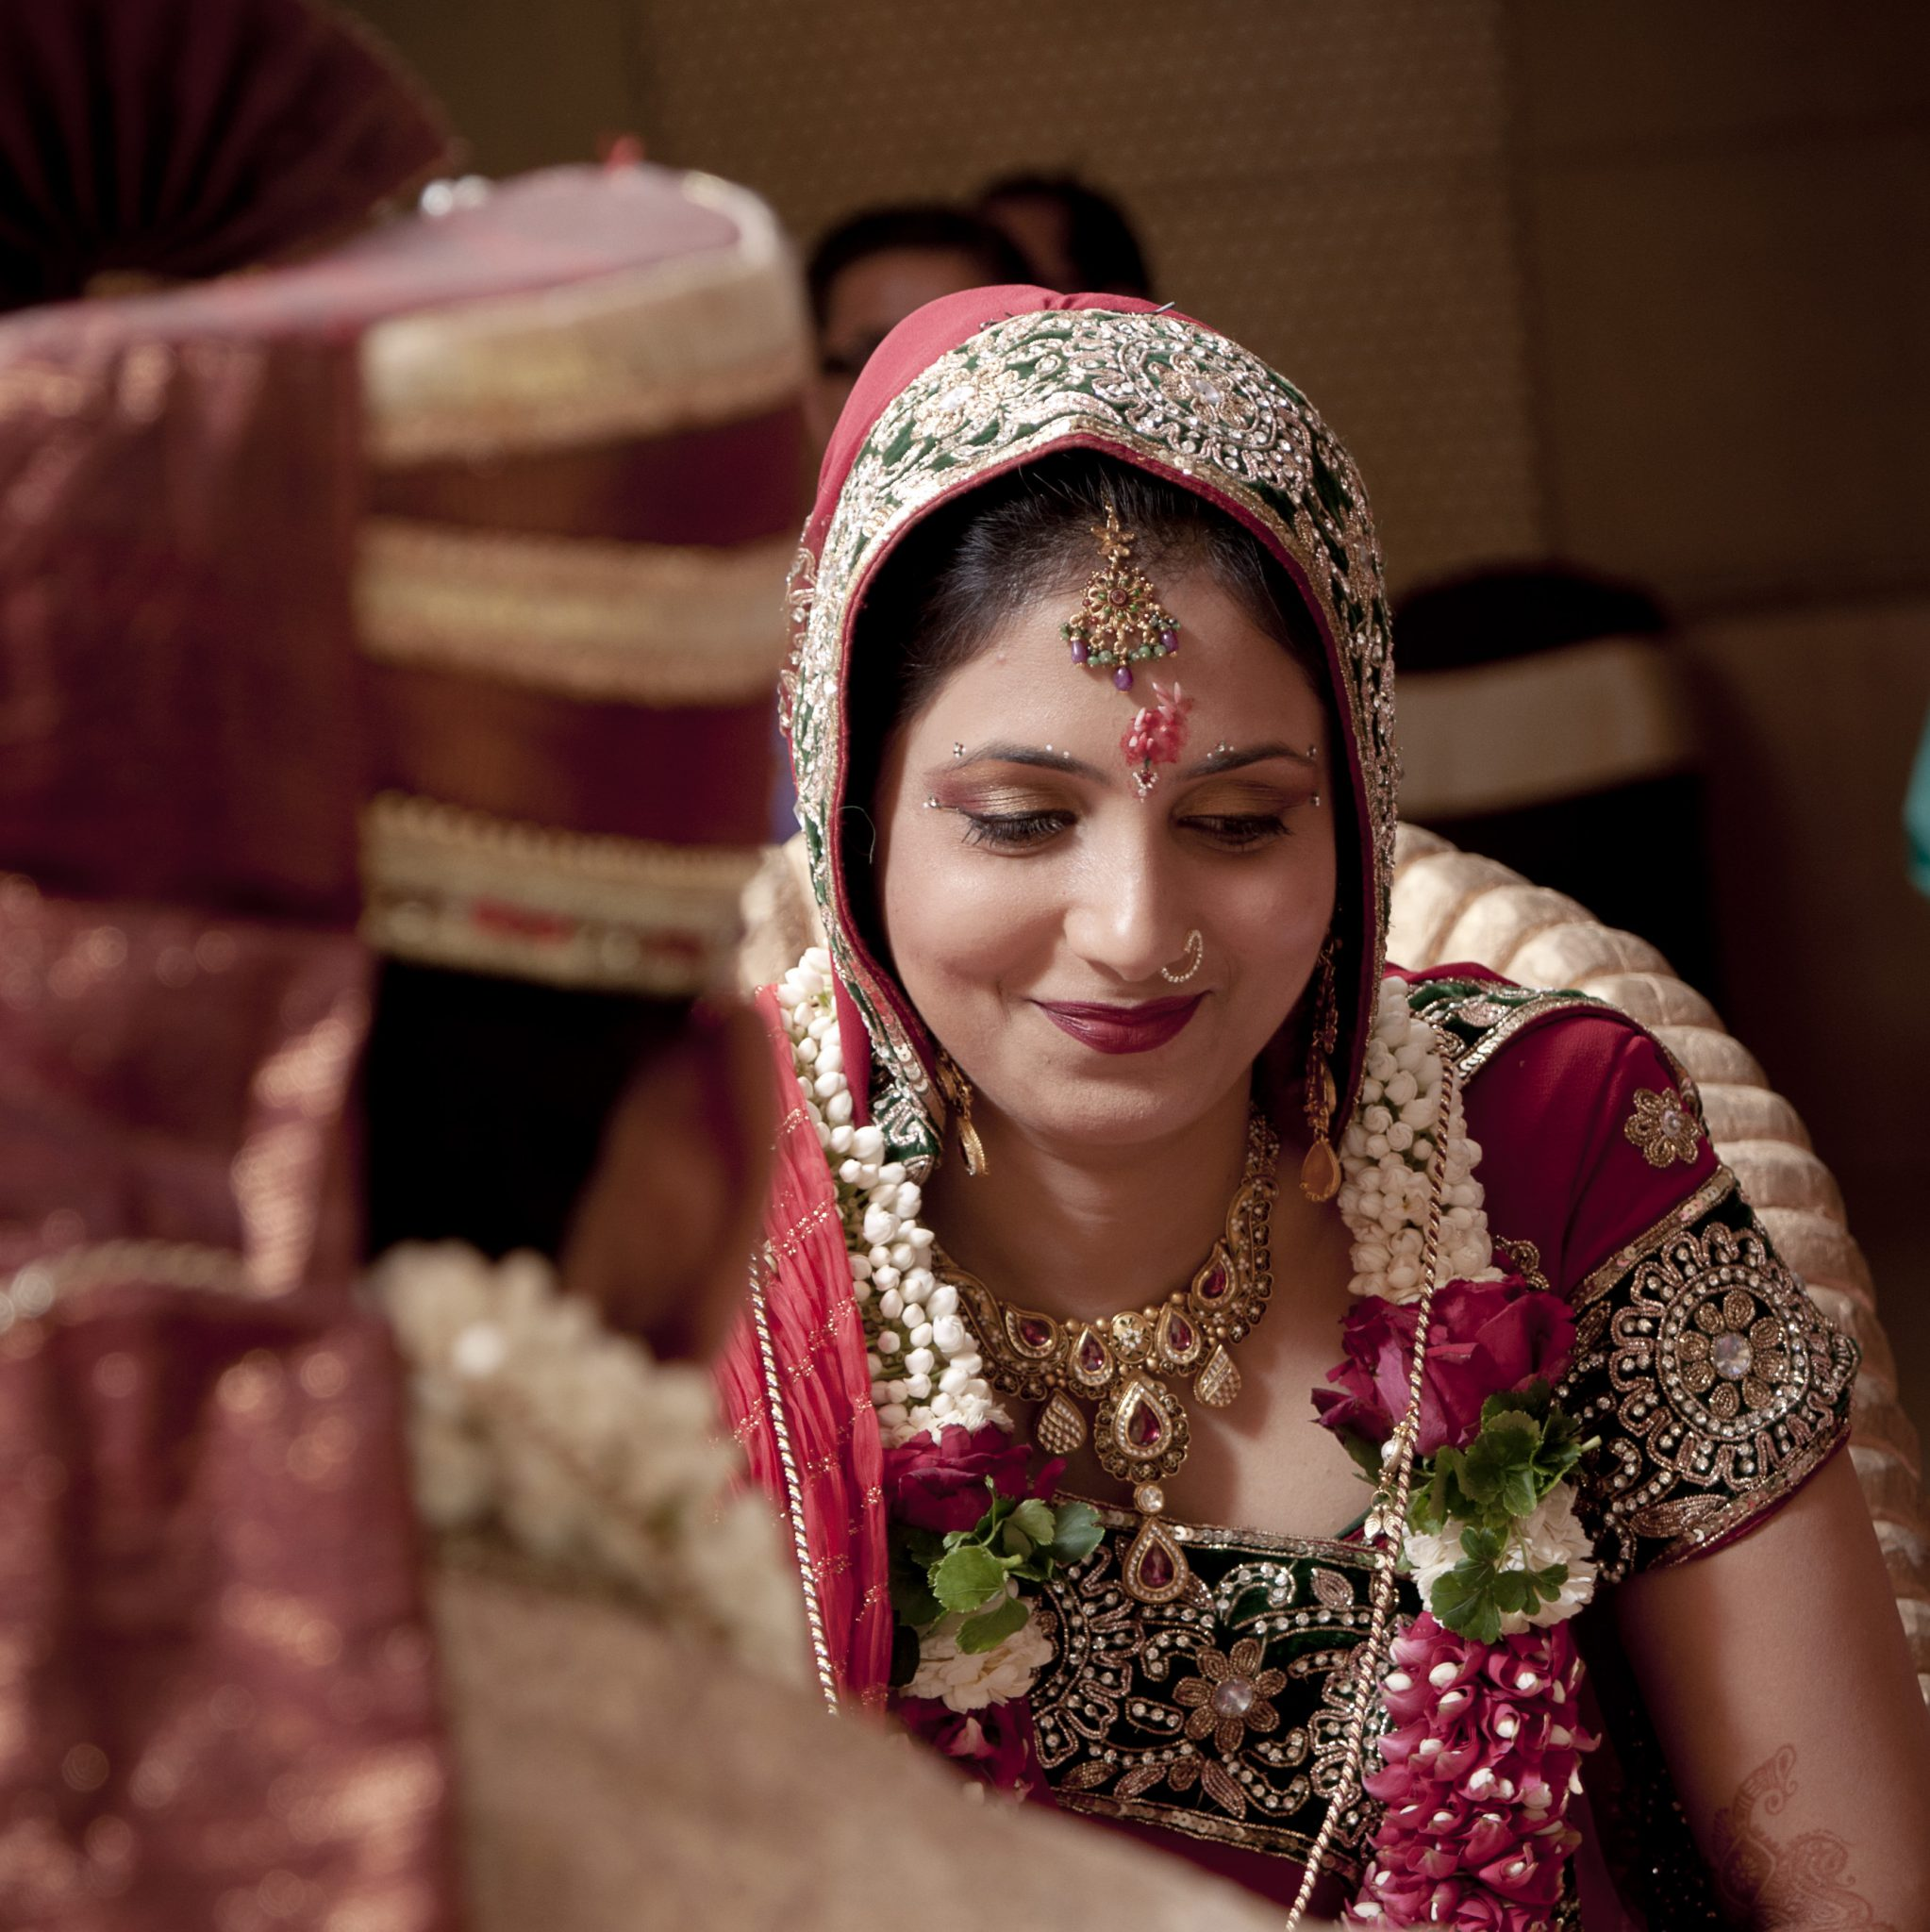 Shy smile of a bride in a Hindu wedding by kunjan detroja